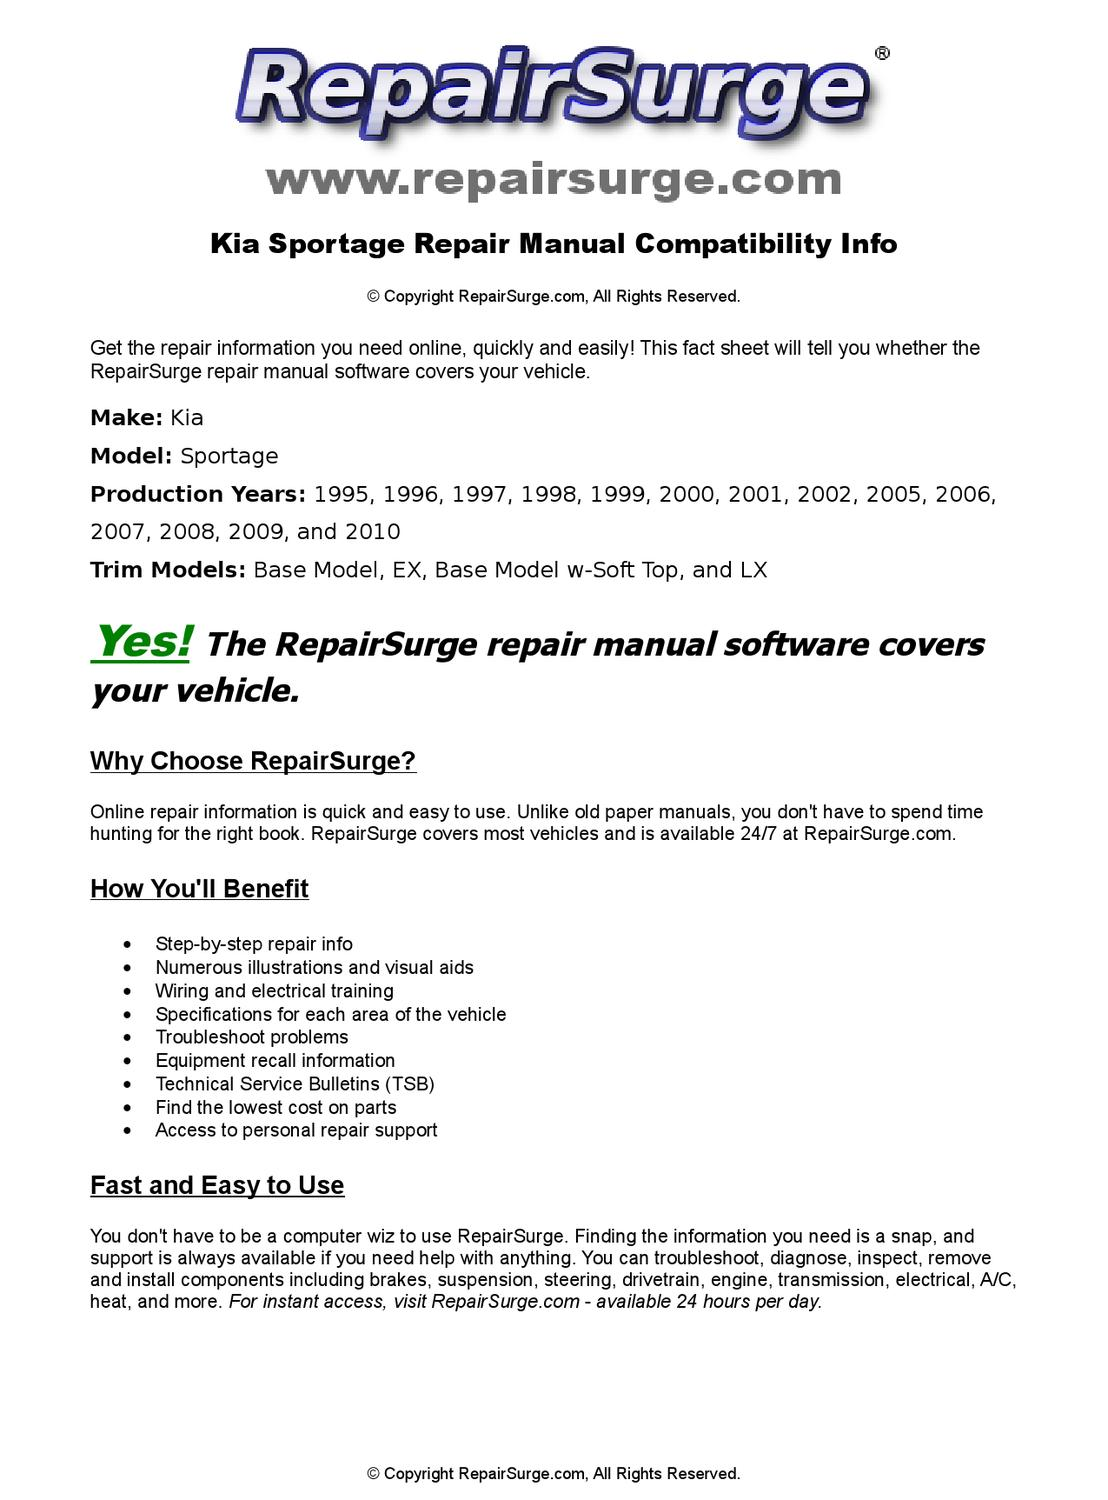 Kia Sportage Online Repair Manual For 1995, 1996, 1997, 1998, 1999, 2000,  2001, 2002, 2005, 2006, 20 by RepairSurge - issuu